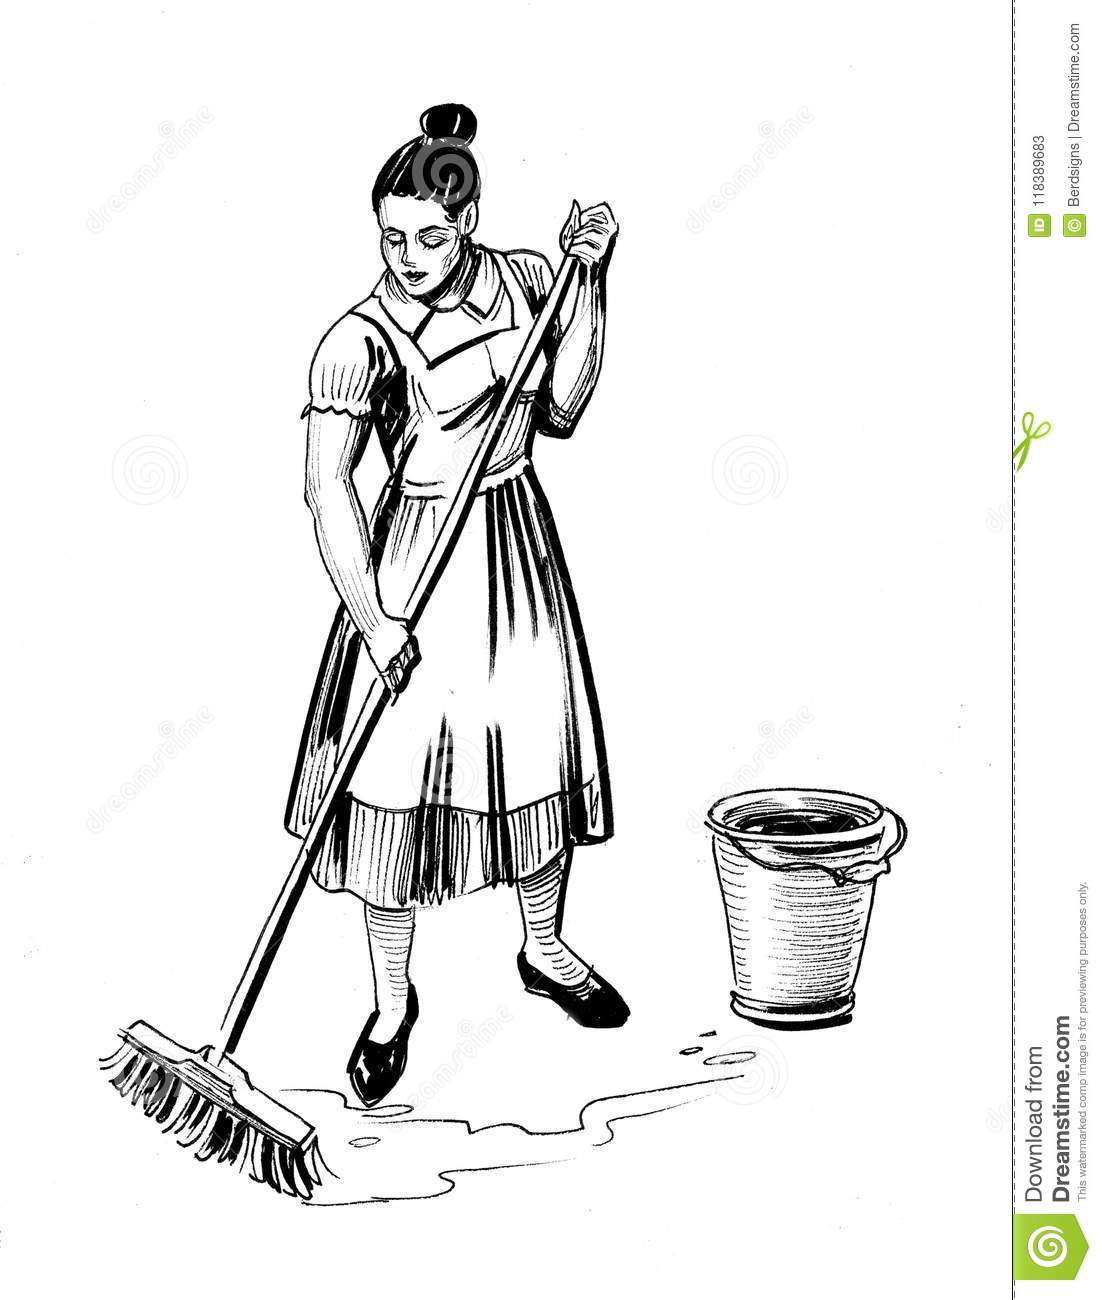 woman mopping floor stock illustration illustration of white 118389683 https www dreamstime com ink black white illustration housewife mopping floor woman mopping floor image118389683